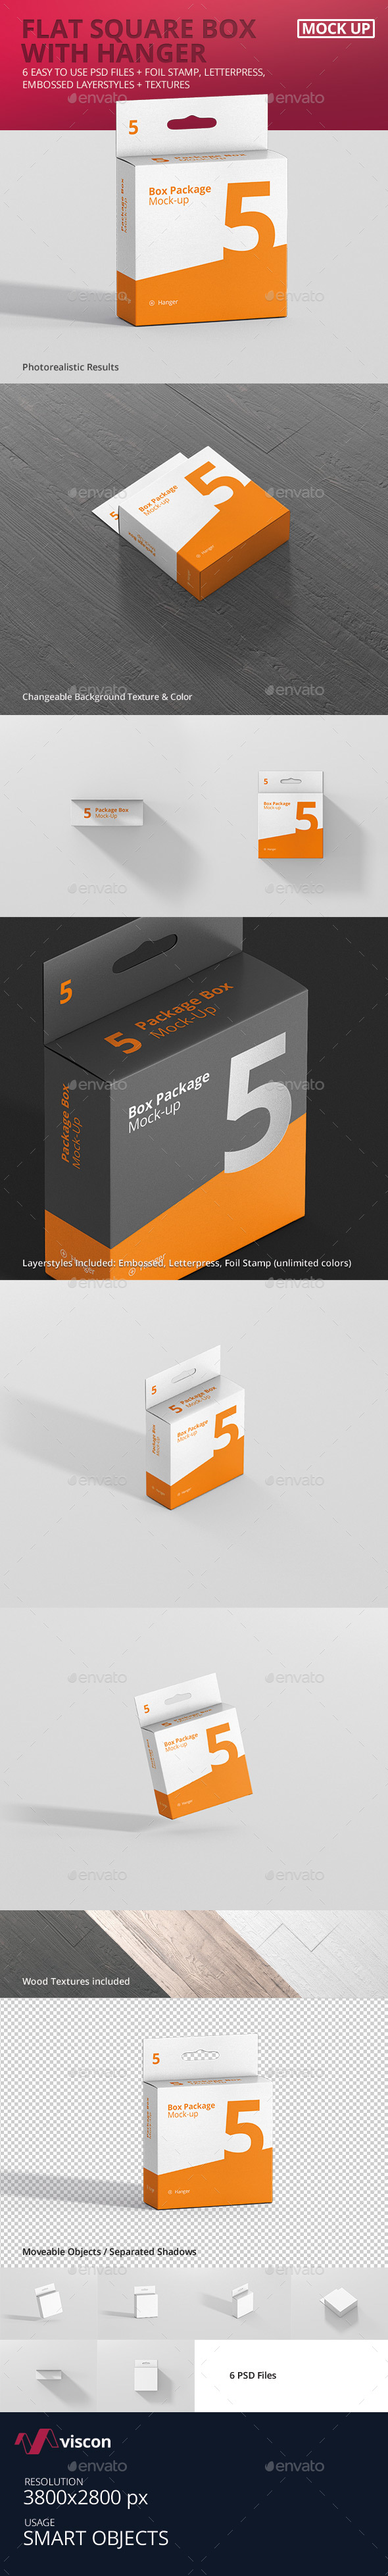 Package Box Mock-Up - Flat Square with Hanger